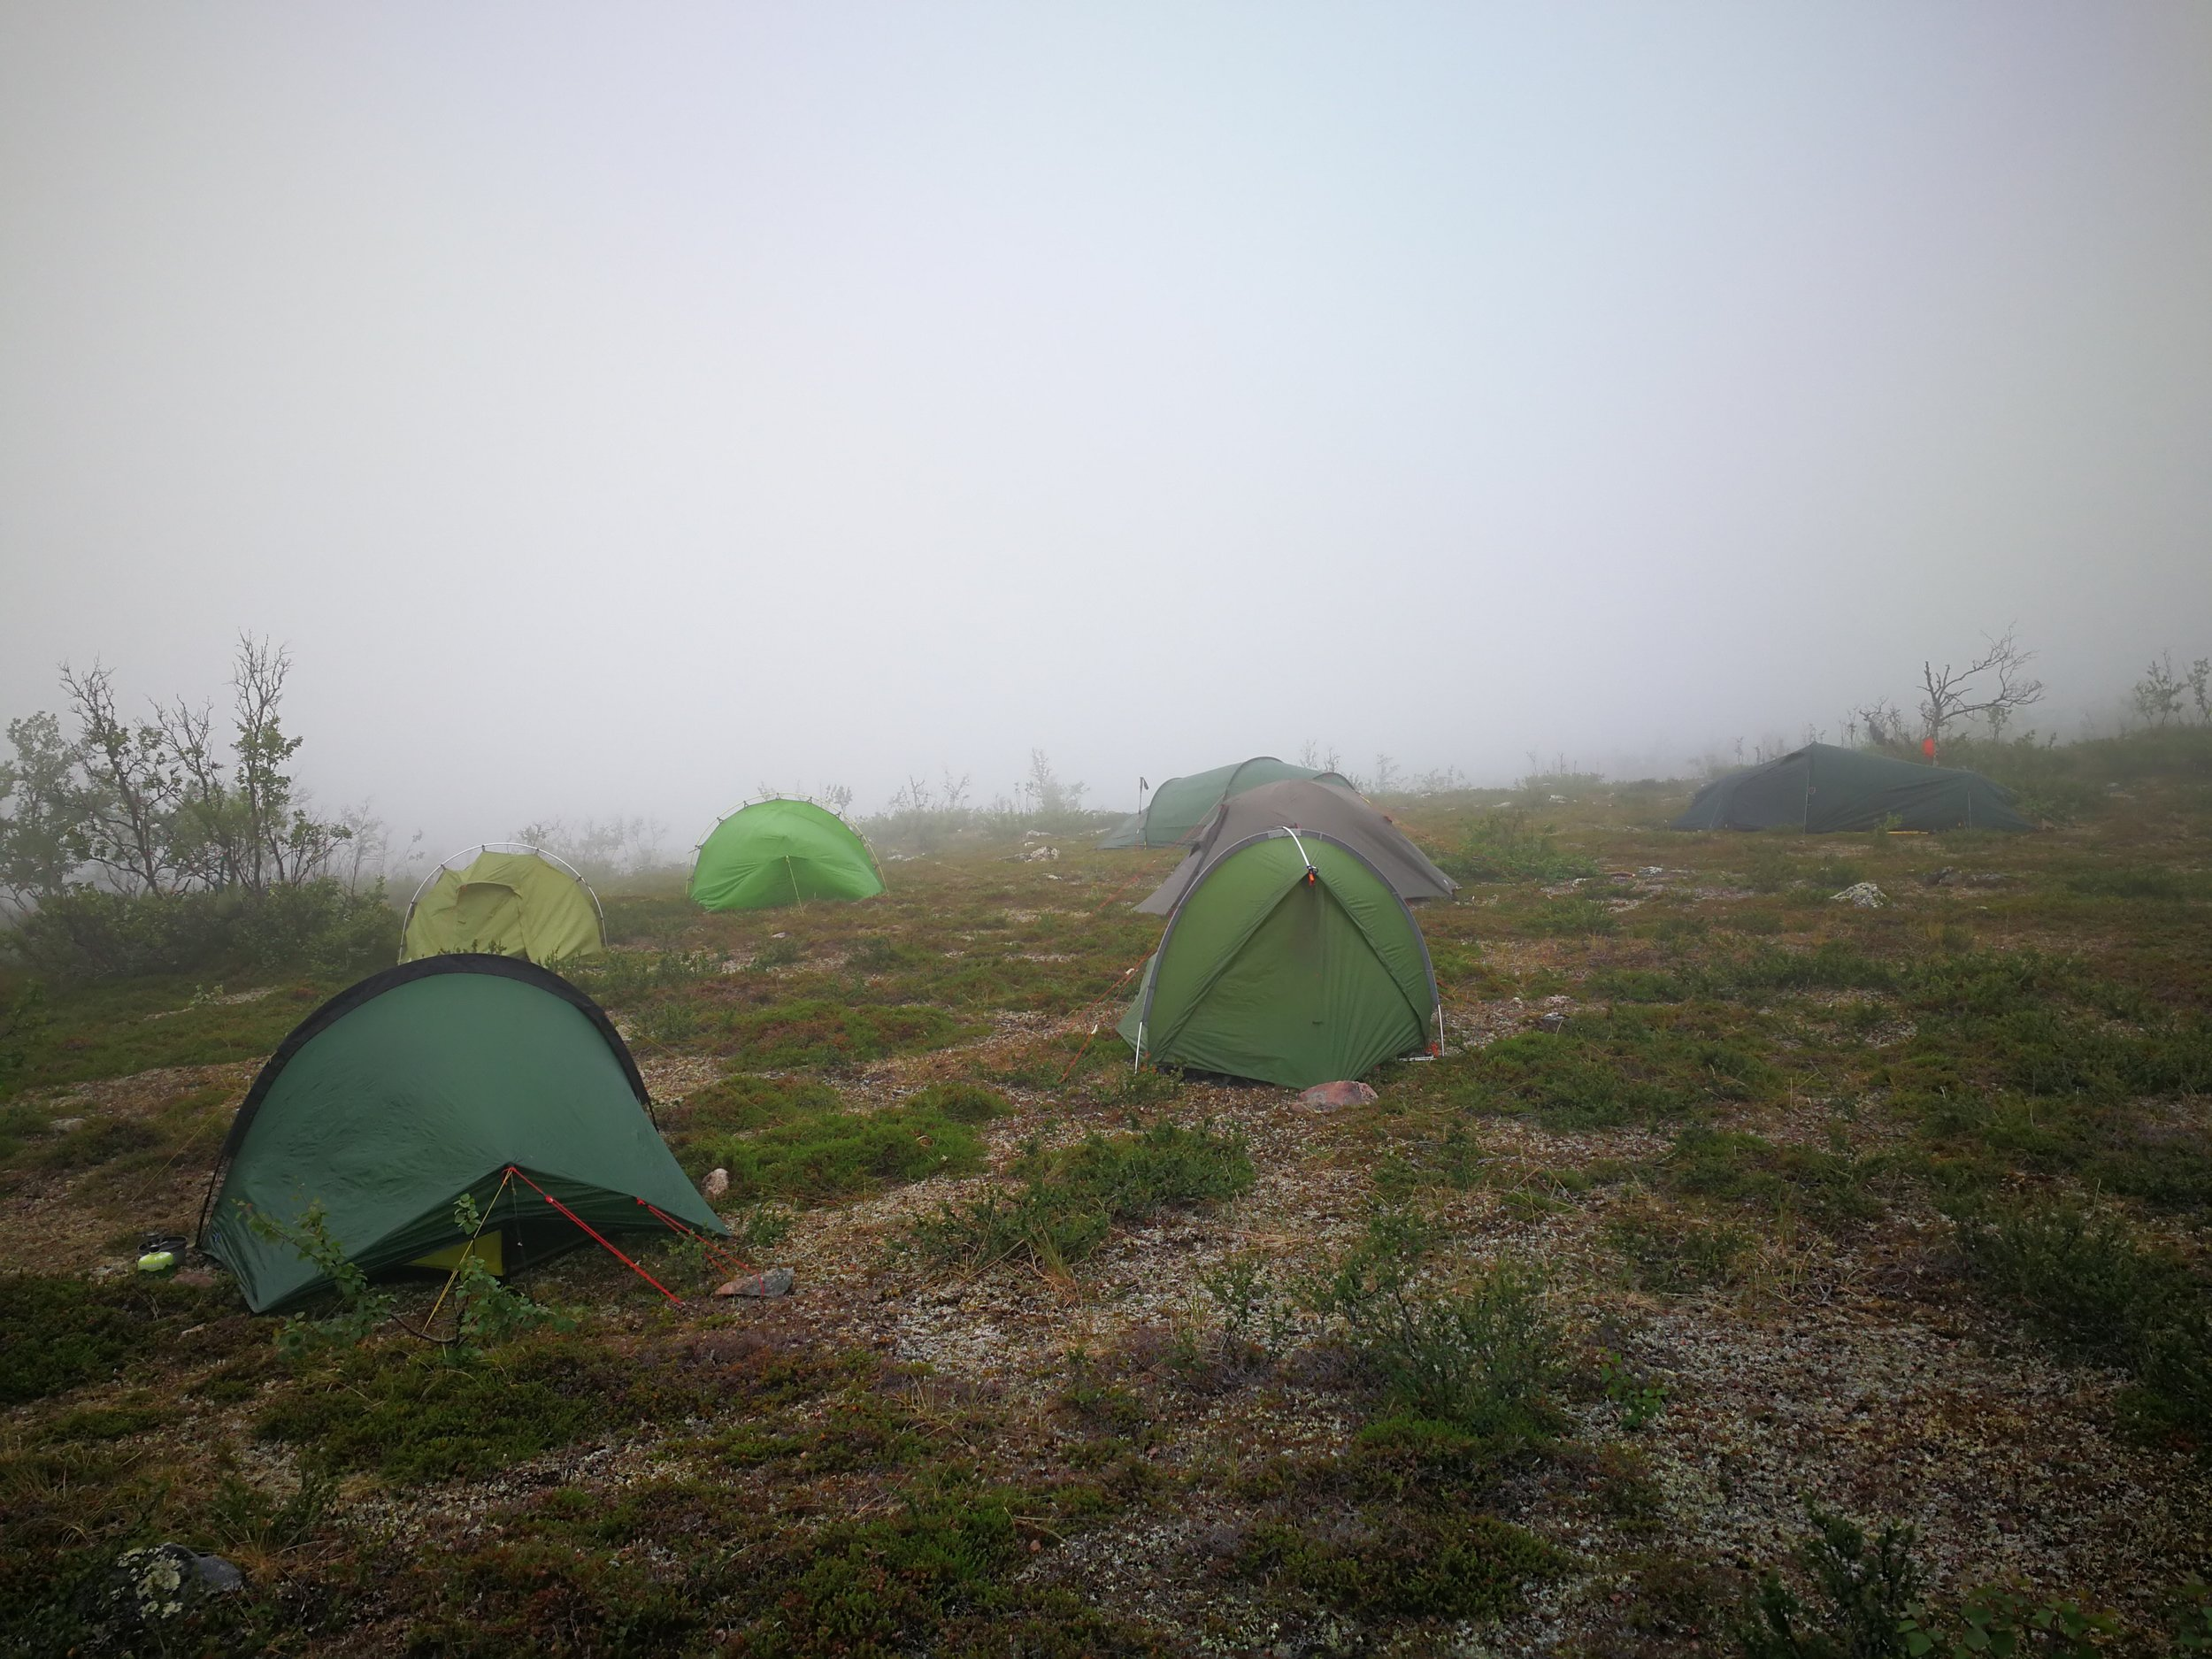 In the mist, I couldn't see far ahead. Suddenly, I stumbled over a gathering of at least 20 tents.